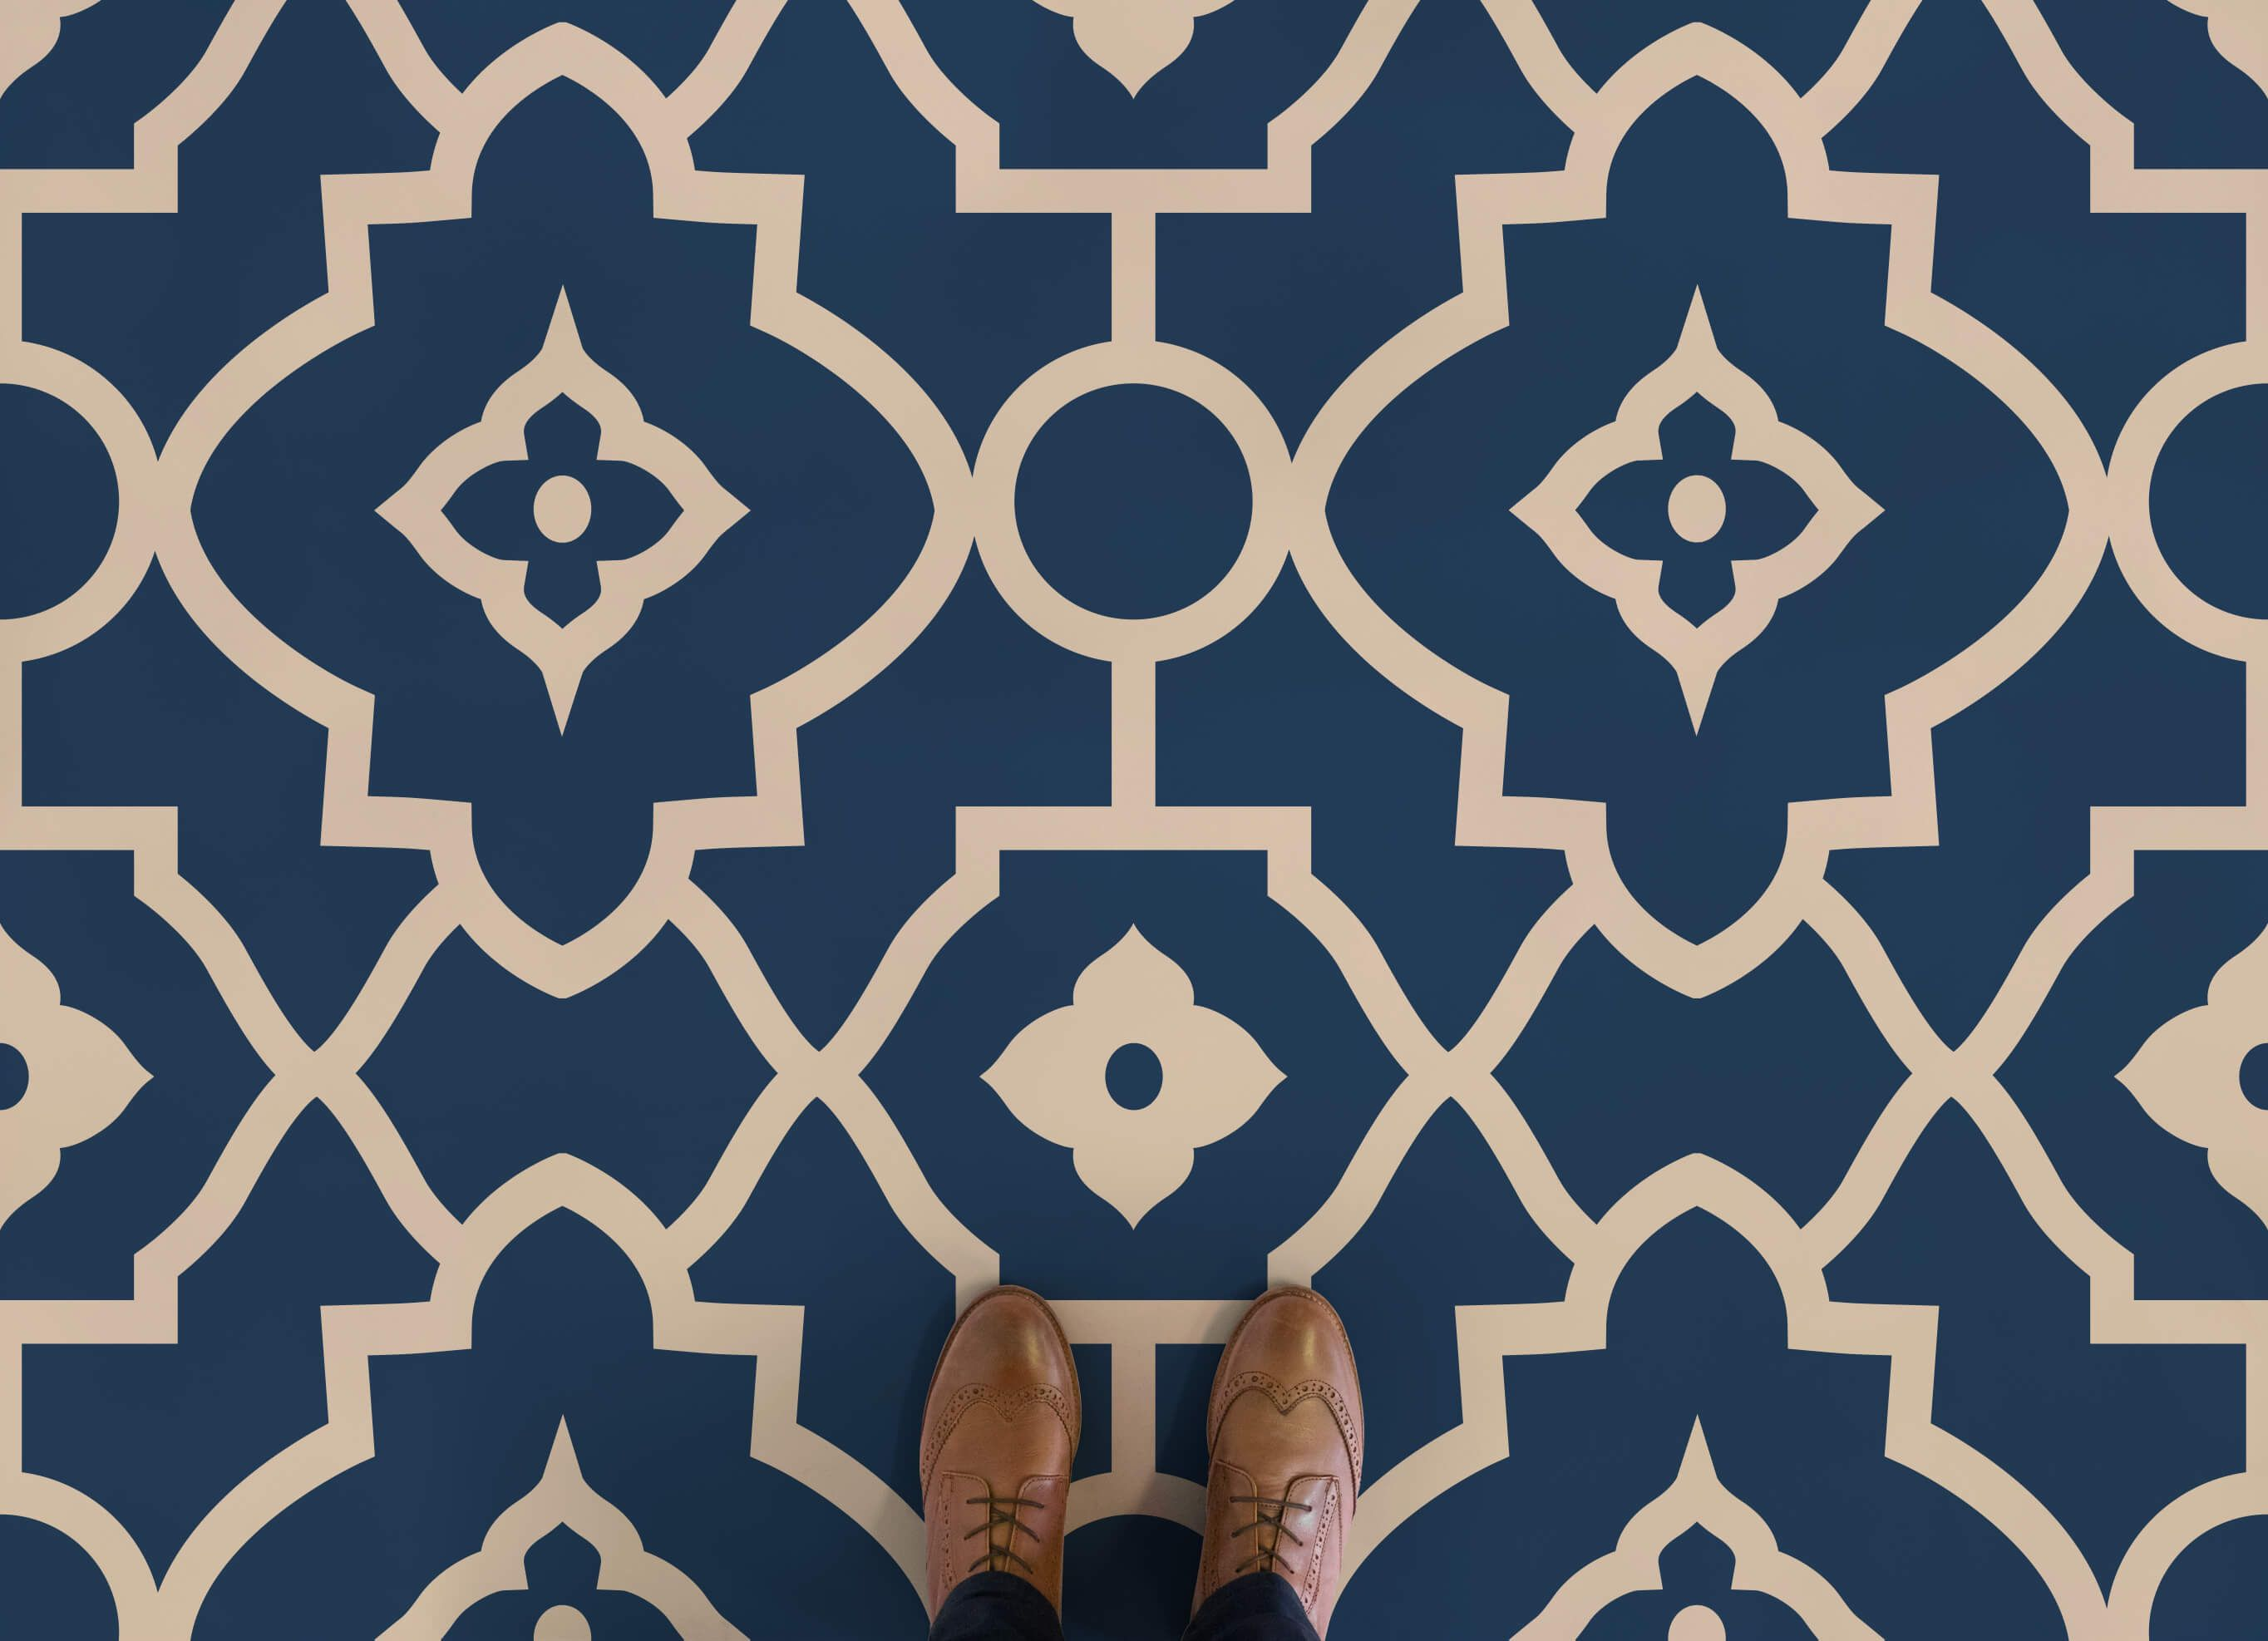 Moroccan Design Vinyl Flooring | Commercial, Room and Moroccan design